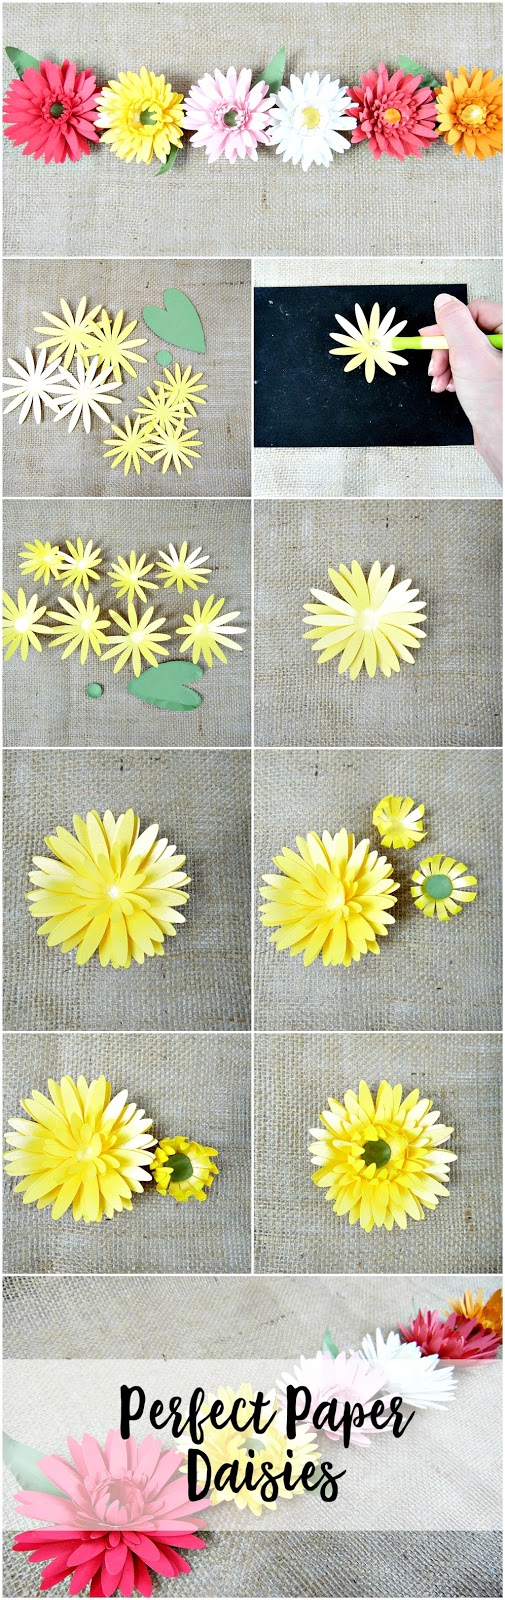 Perfect paper daisies. DIY paper flowers